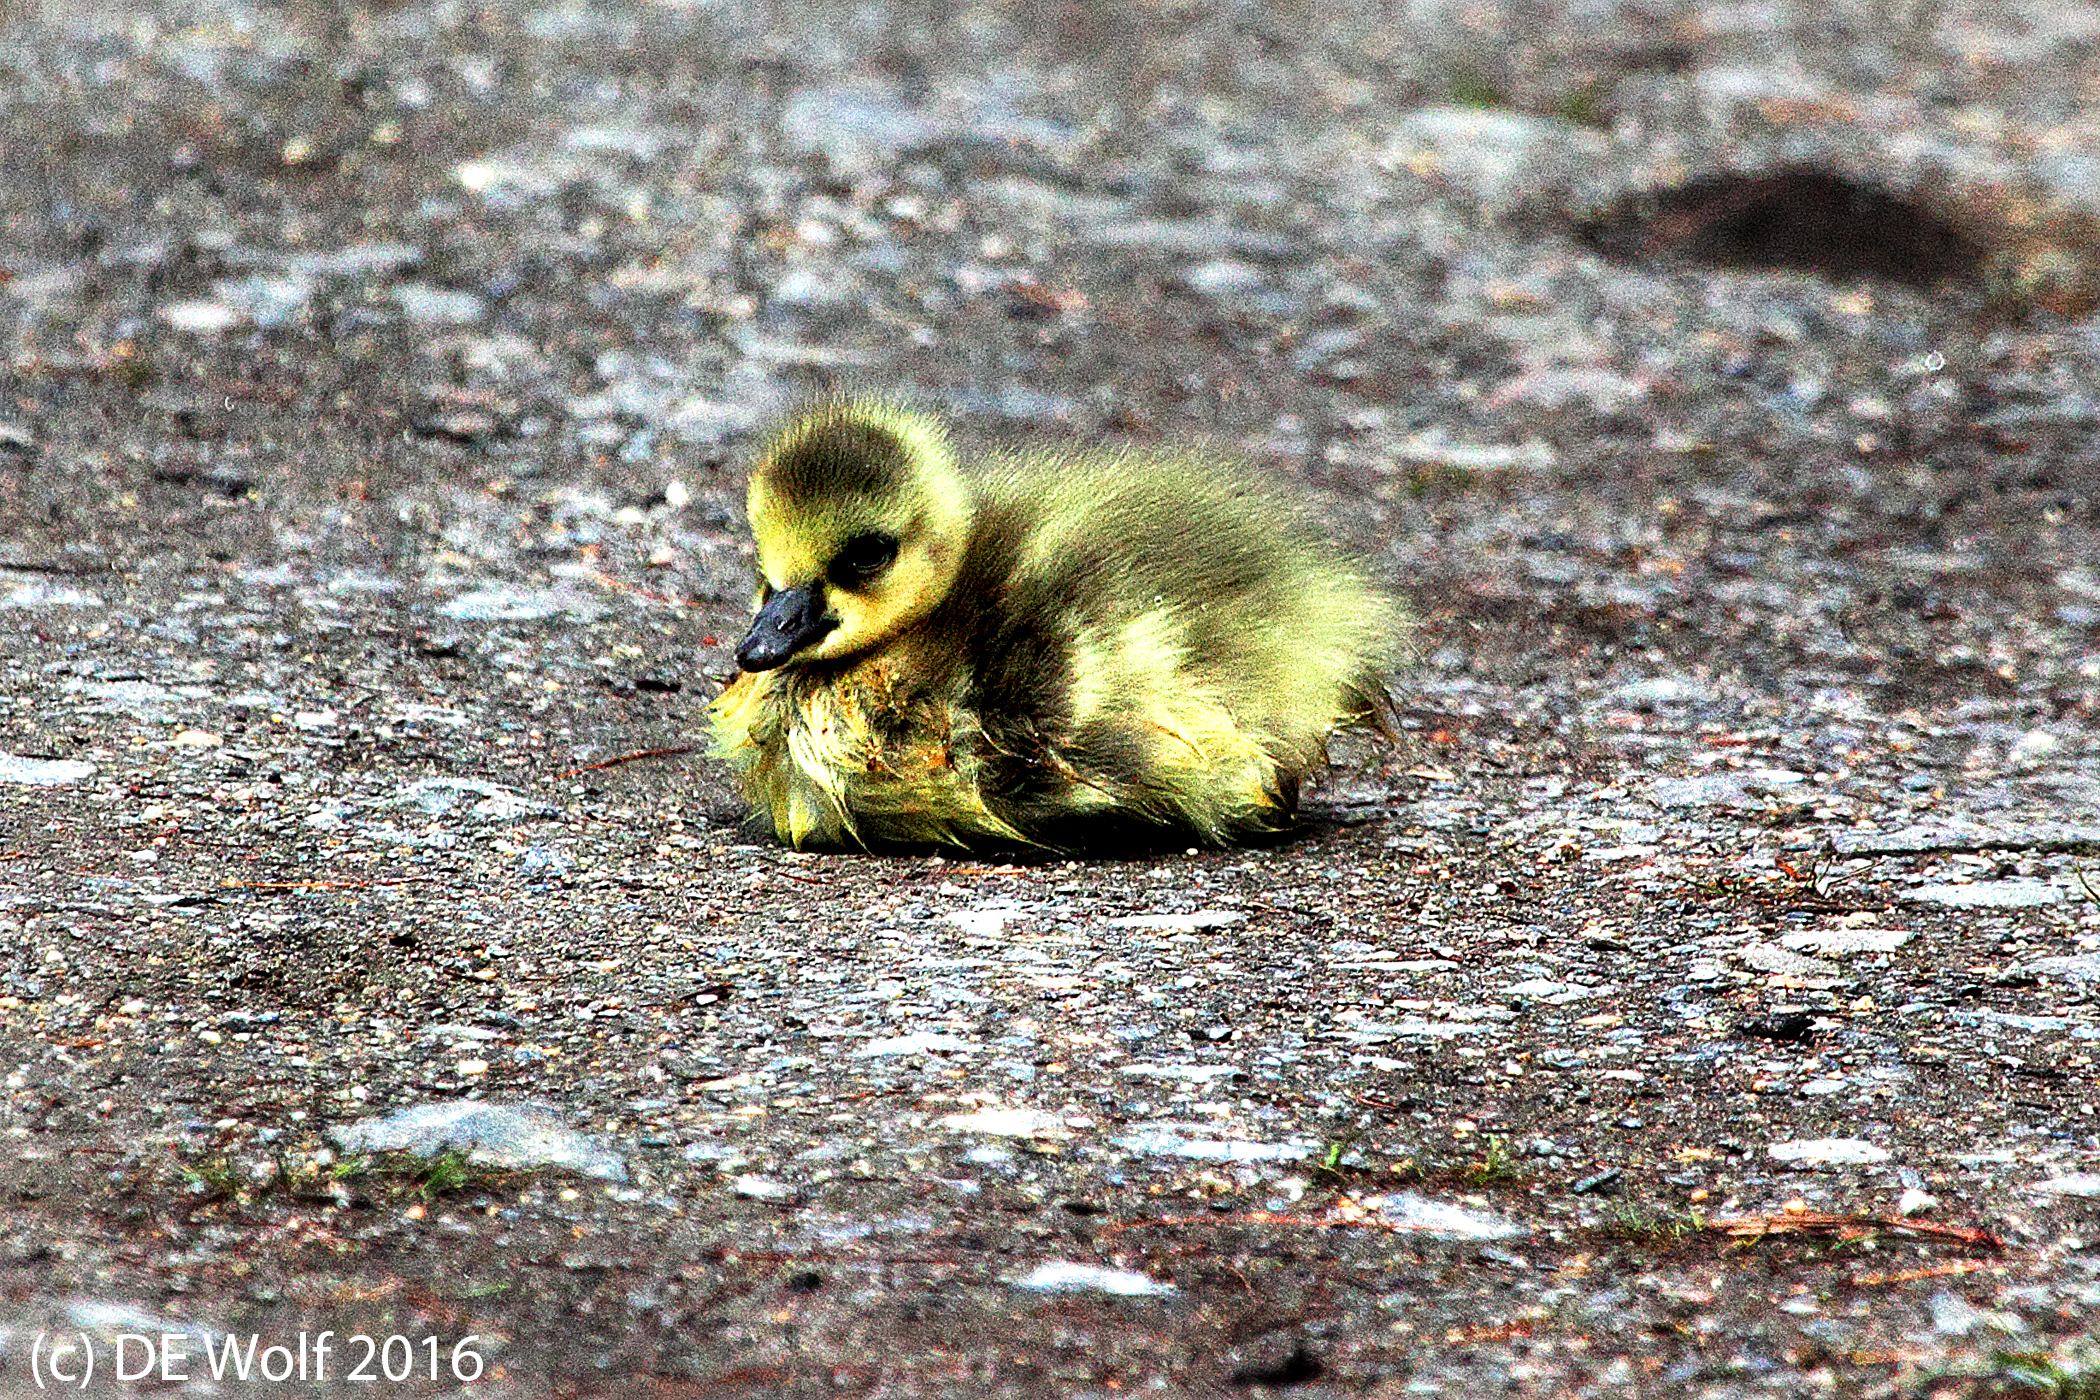 Newly hatched Canadian goose, Sudbury, MA (c) DE Wolf 2016.